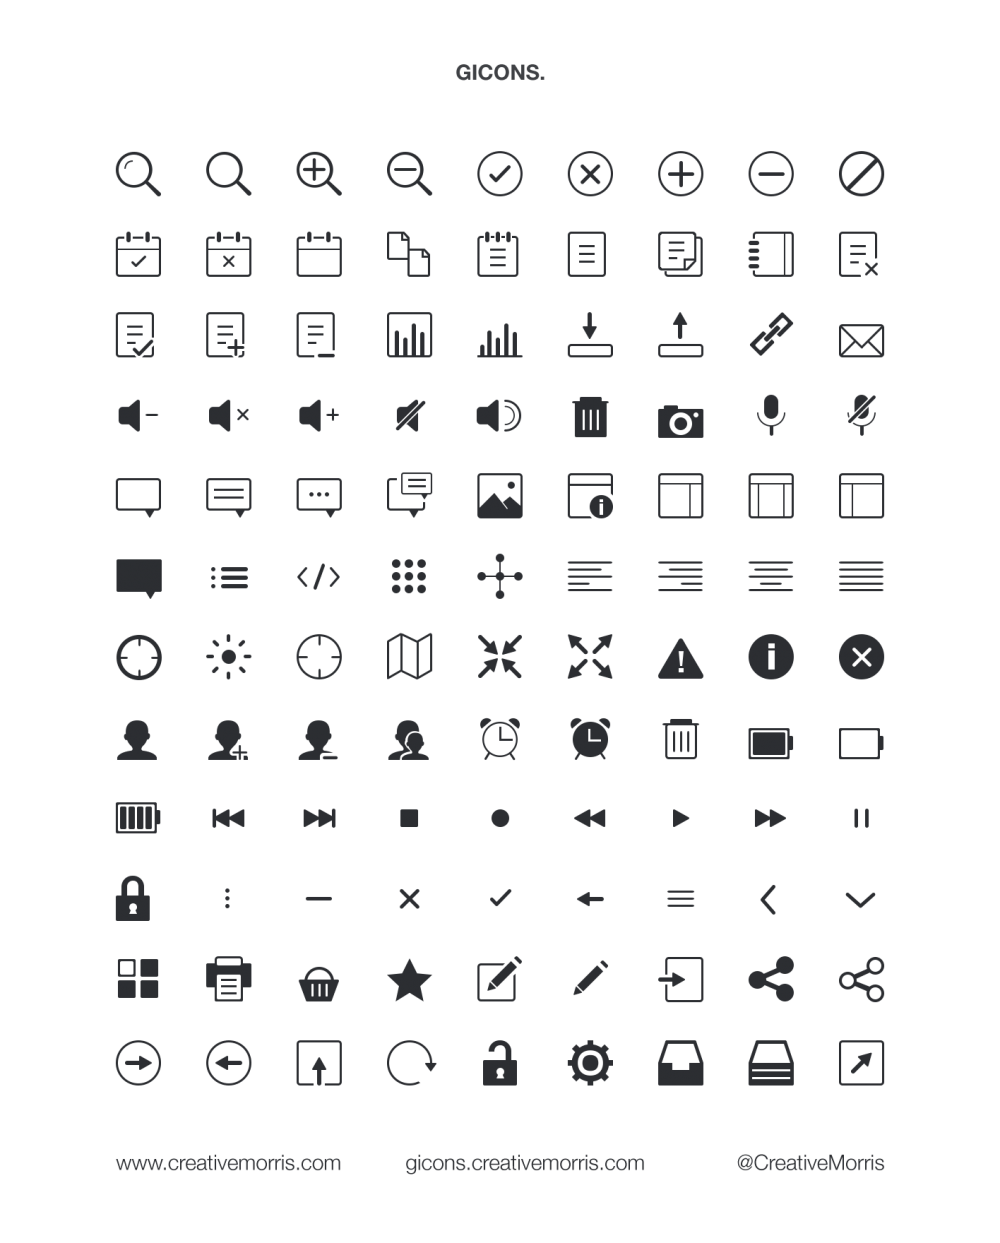 gicons free vector icons - icons